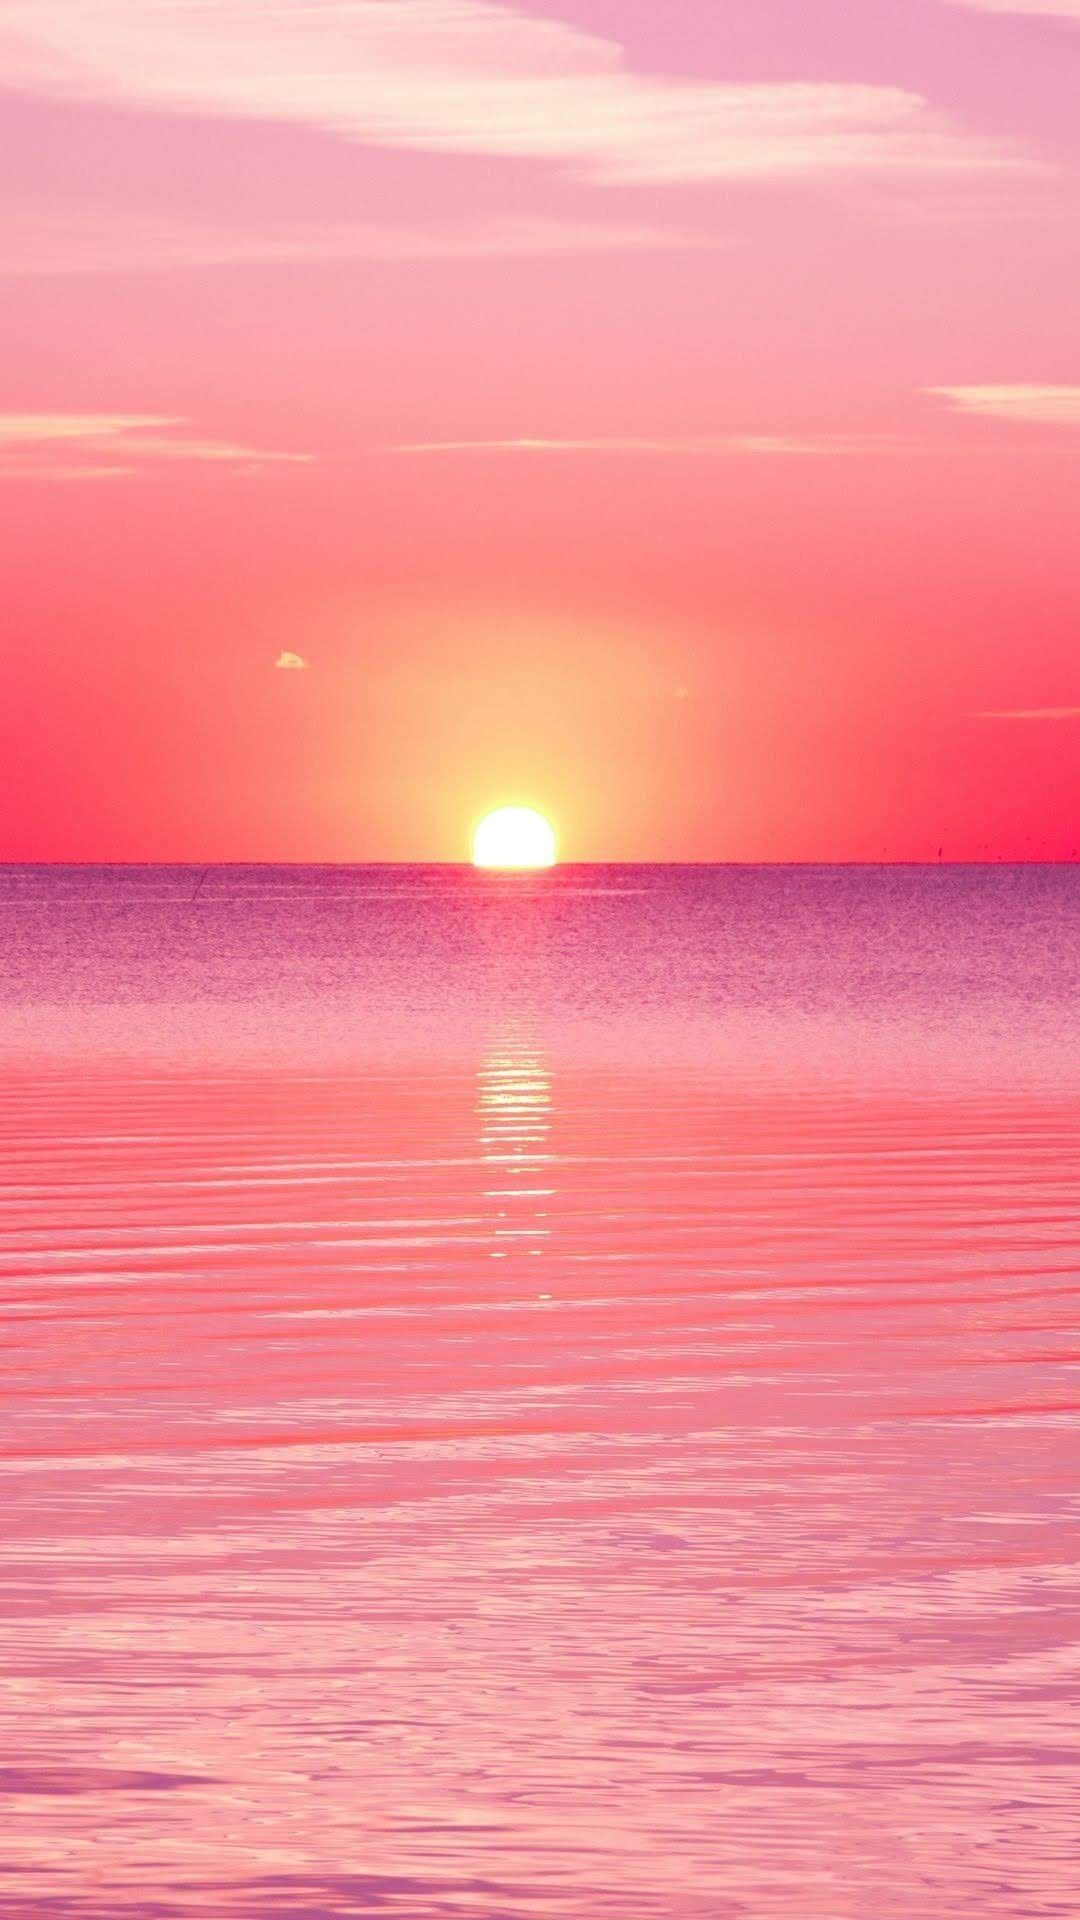 Pin By Mary Eiswerth On Illustrations In 2020 Sunset Iphone Wallpaper Sunset Wallpaper Pretty Wallpapers